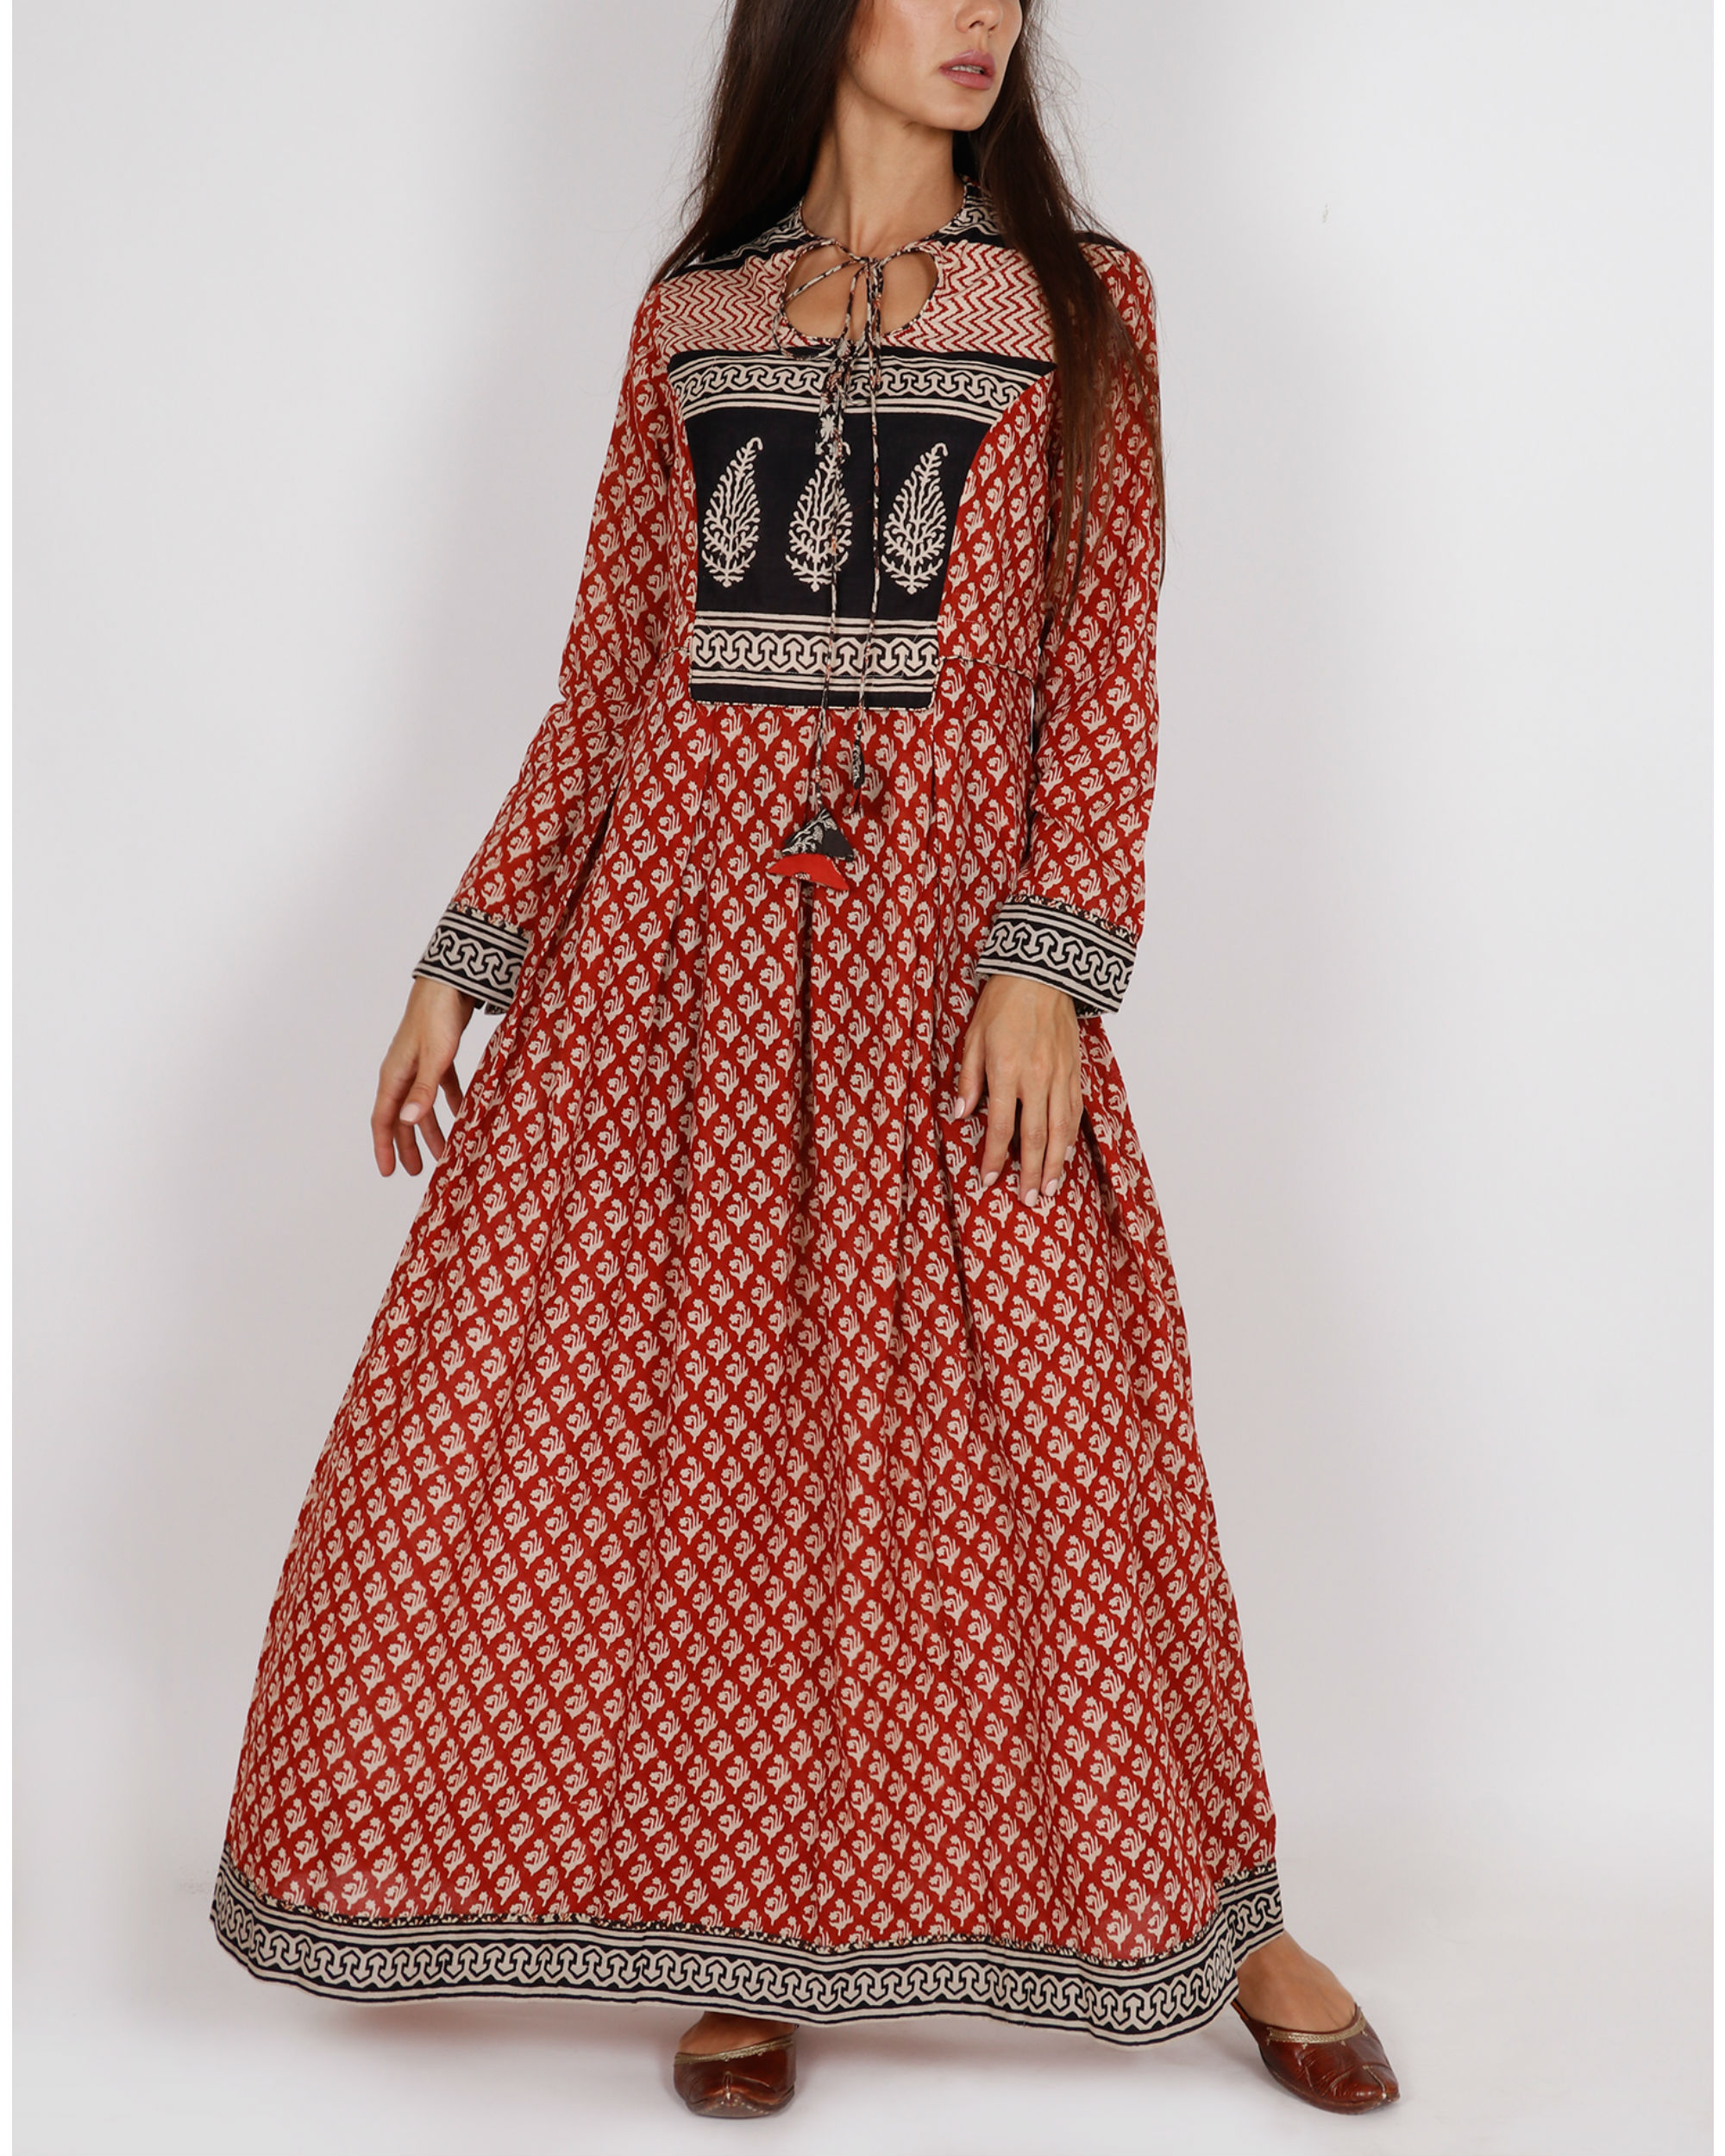 Red Kalidar Peshwaza Dress